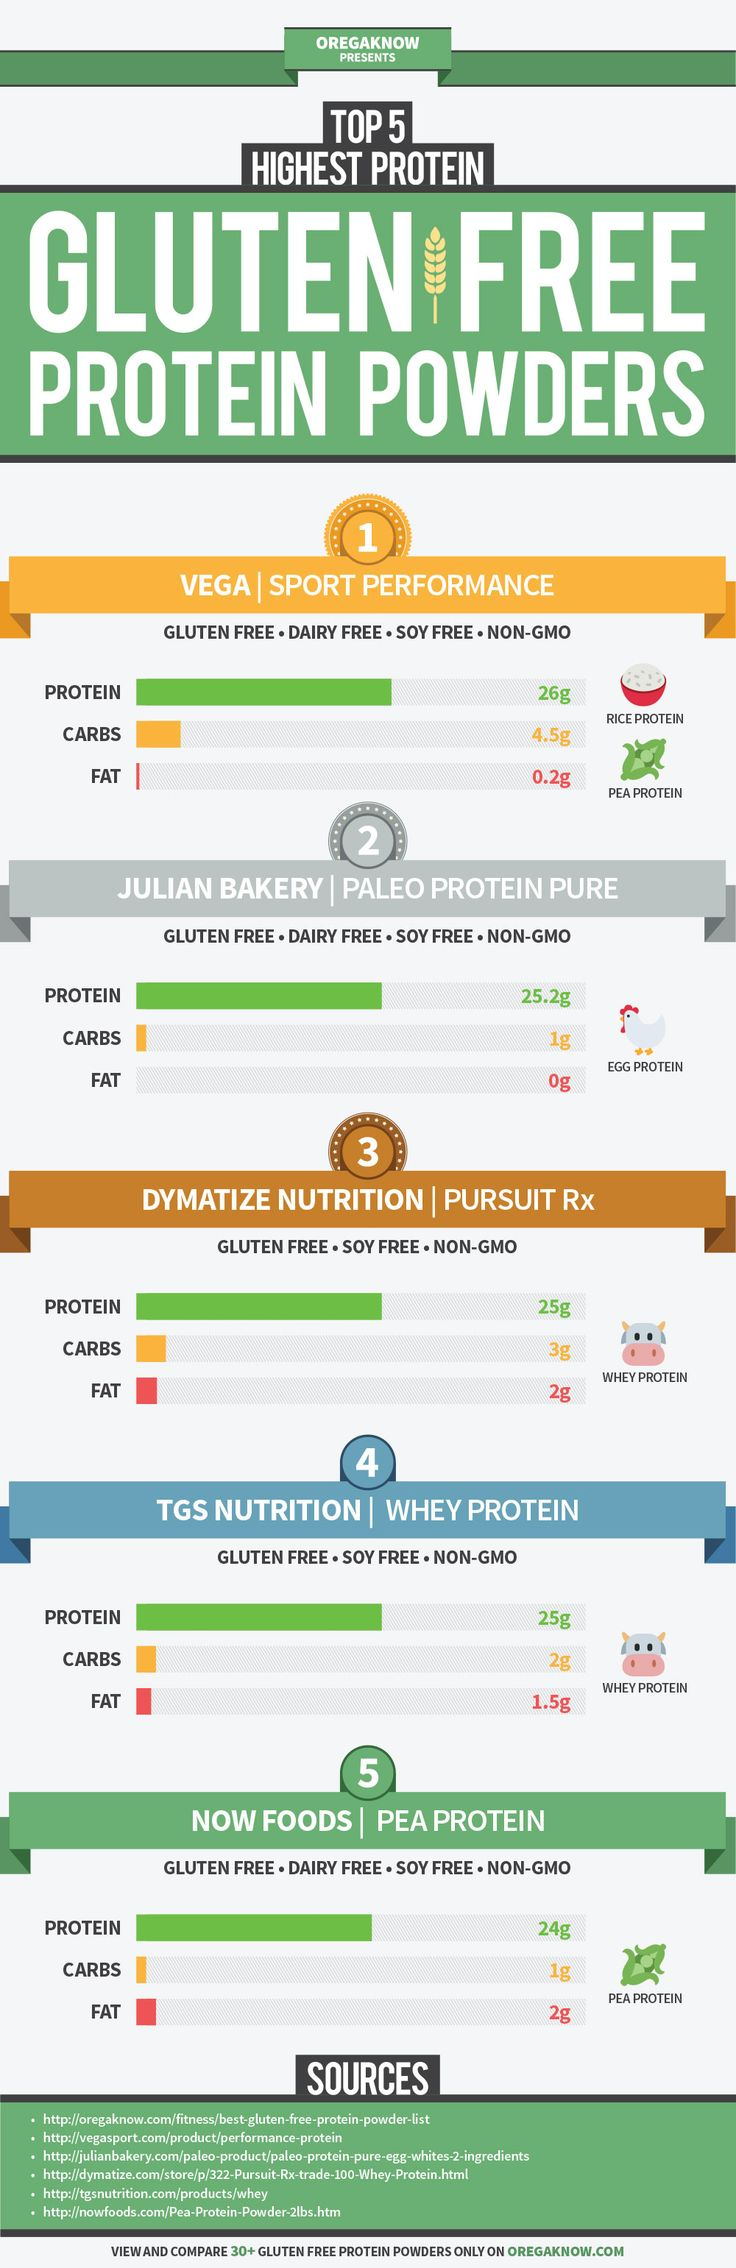 This infographic compares the top 5 gluten free protein powders rated by the highest protein count. If you're looking for more options and want to compare over 30 different brands, check out our gluten free protein comparison here: http://oregaknow.com/fitness/best-gluten-free-protein-powder-list/